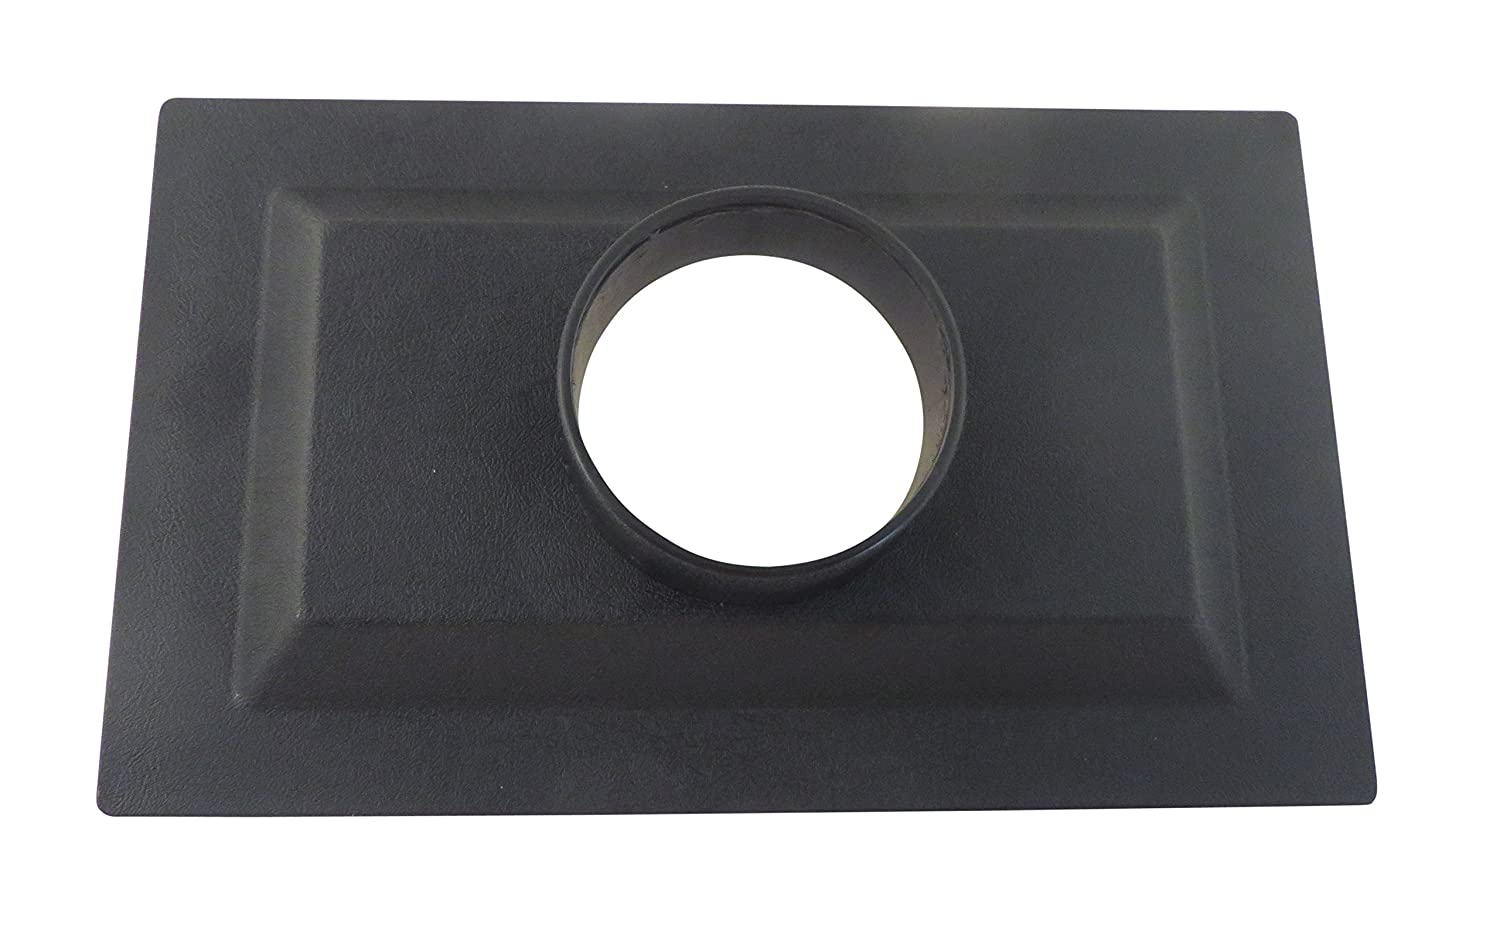 8 x 13.5 x 2.5 ABS Plastic Flange with 4 OD Opening for Dust Collector Systems 73475